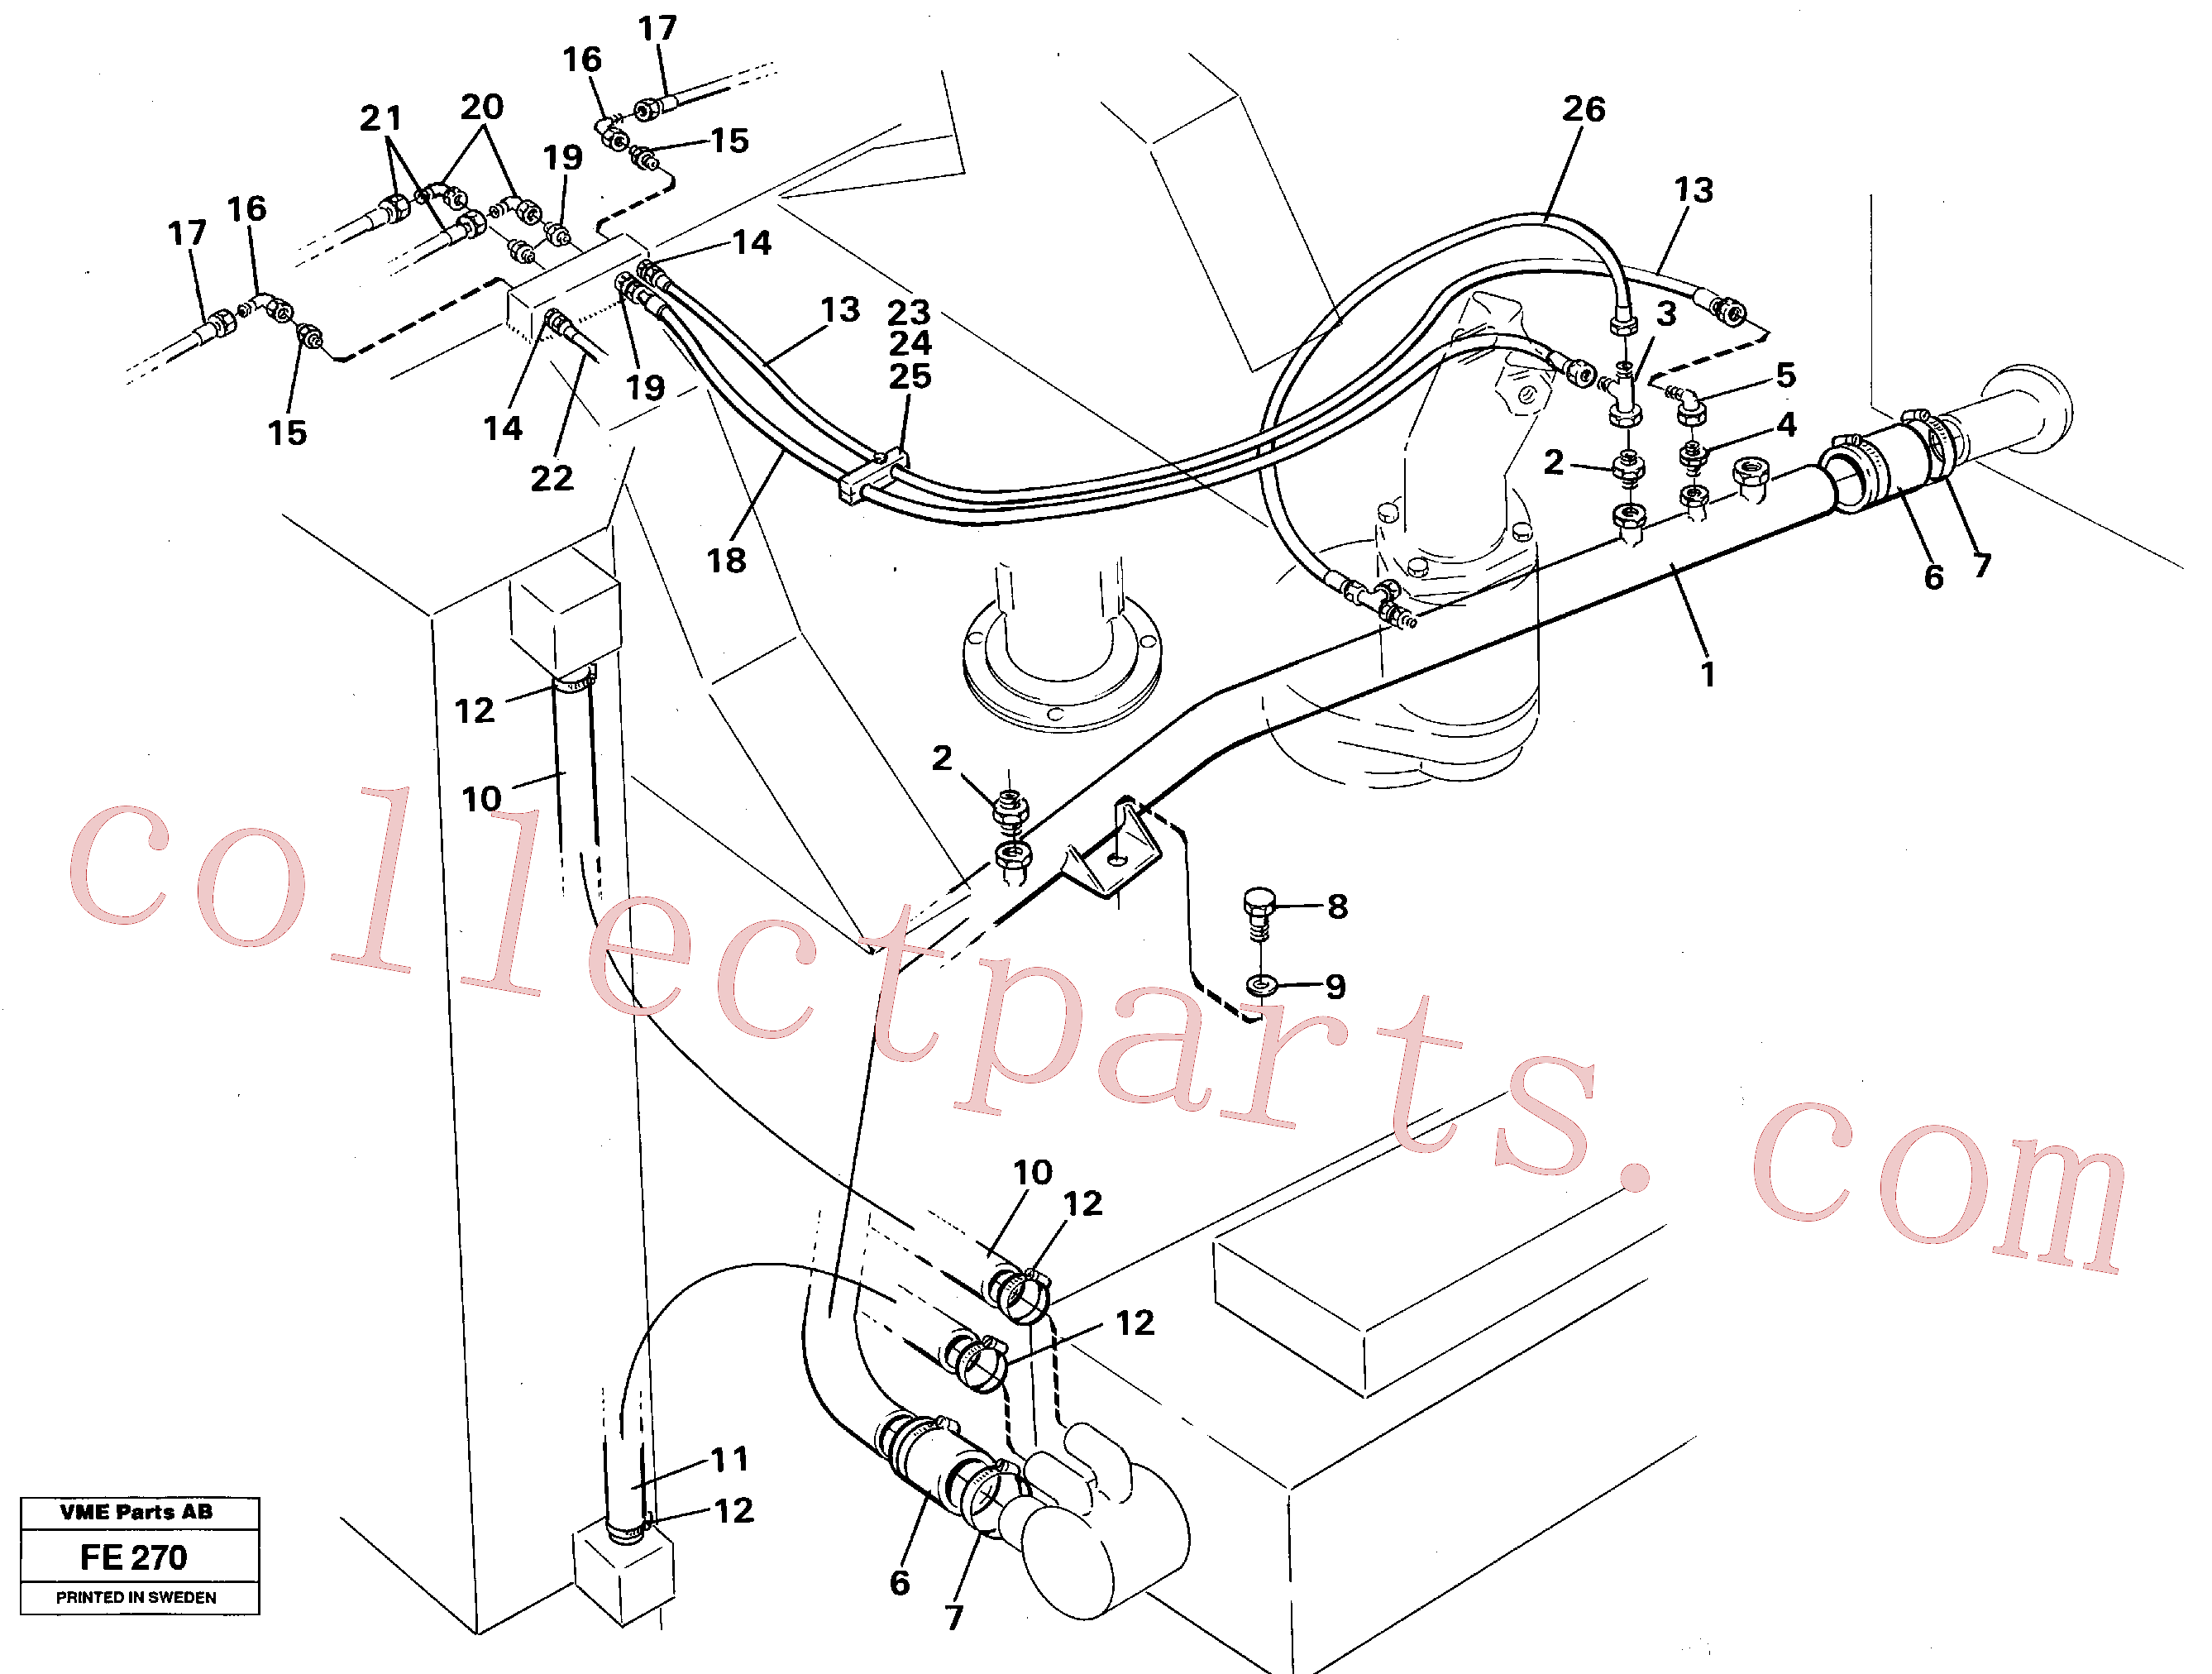 VOE14047202 for Volvo Hydraulic system, return lines(FE270 assembly)